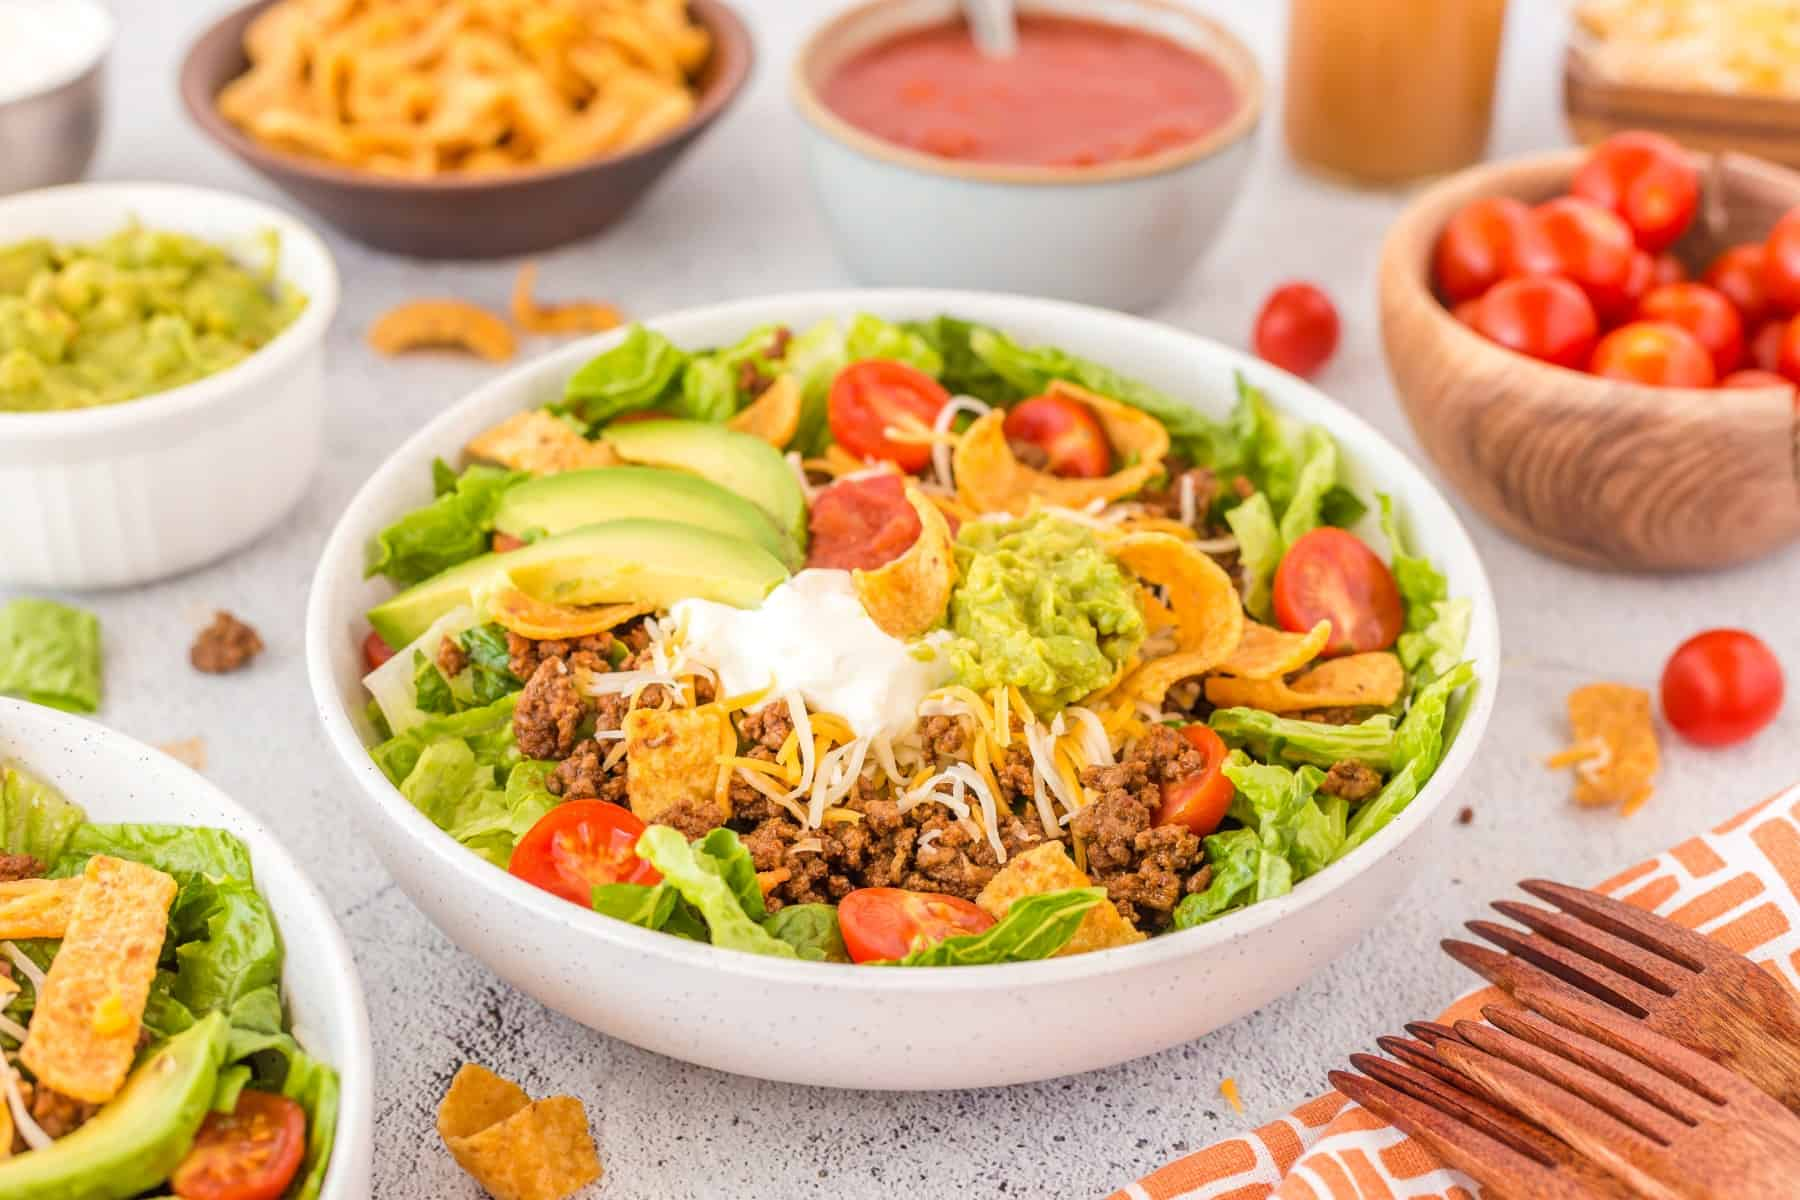 Bowl of Easy Beef Taco Salad with condiments.